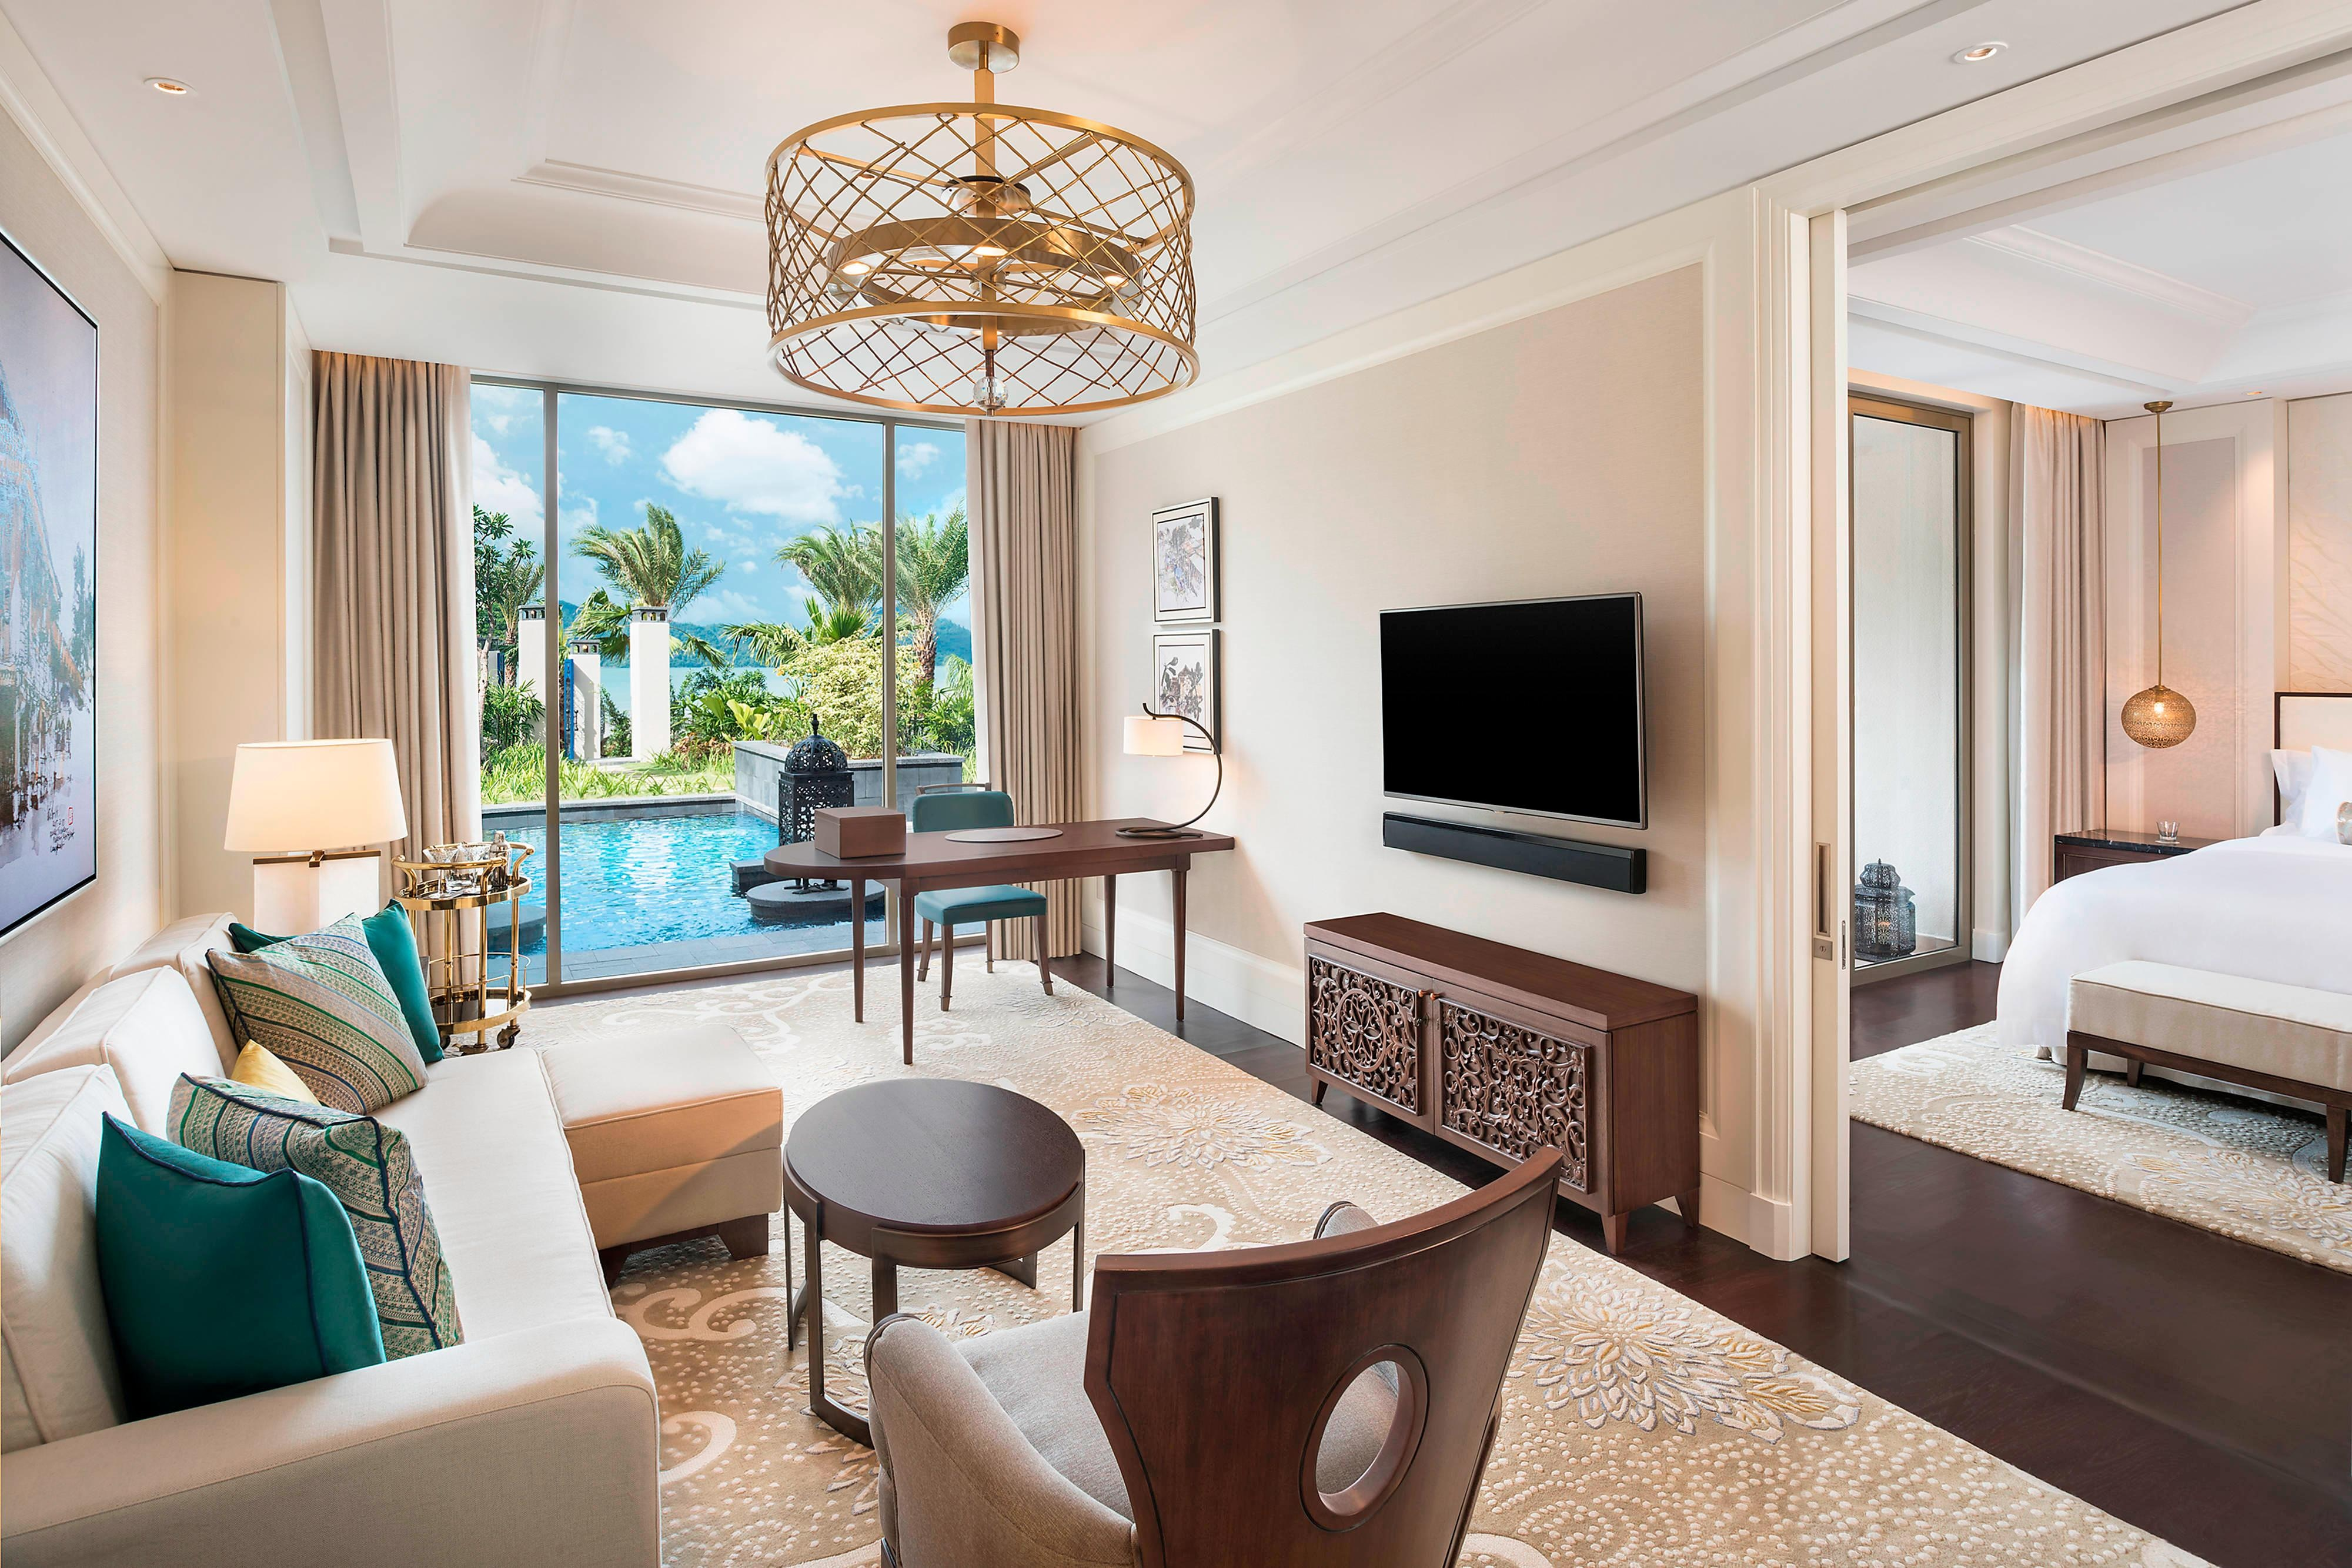 St. Regis Pool Suite - Living Room